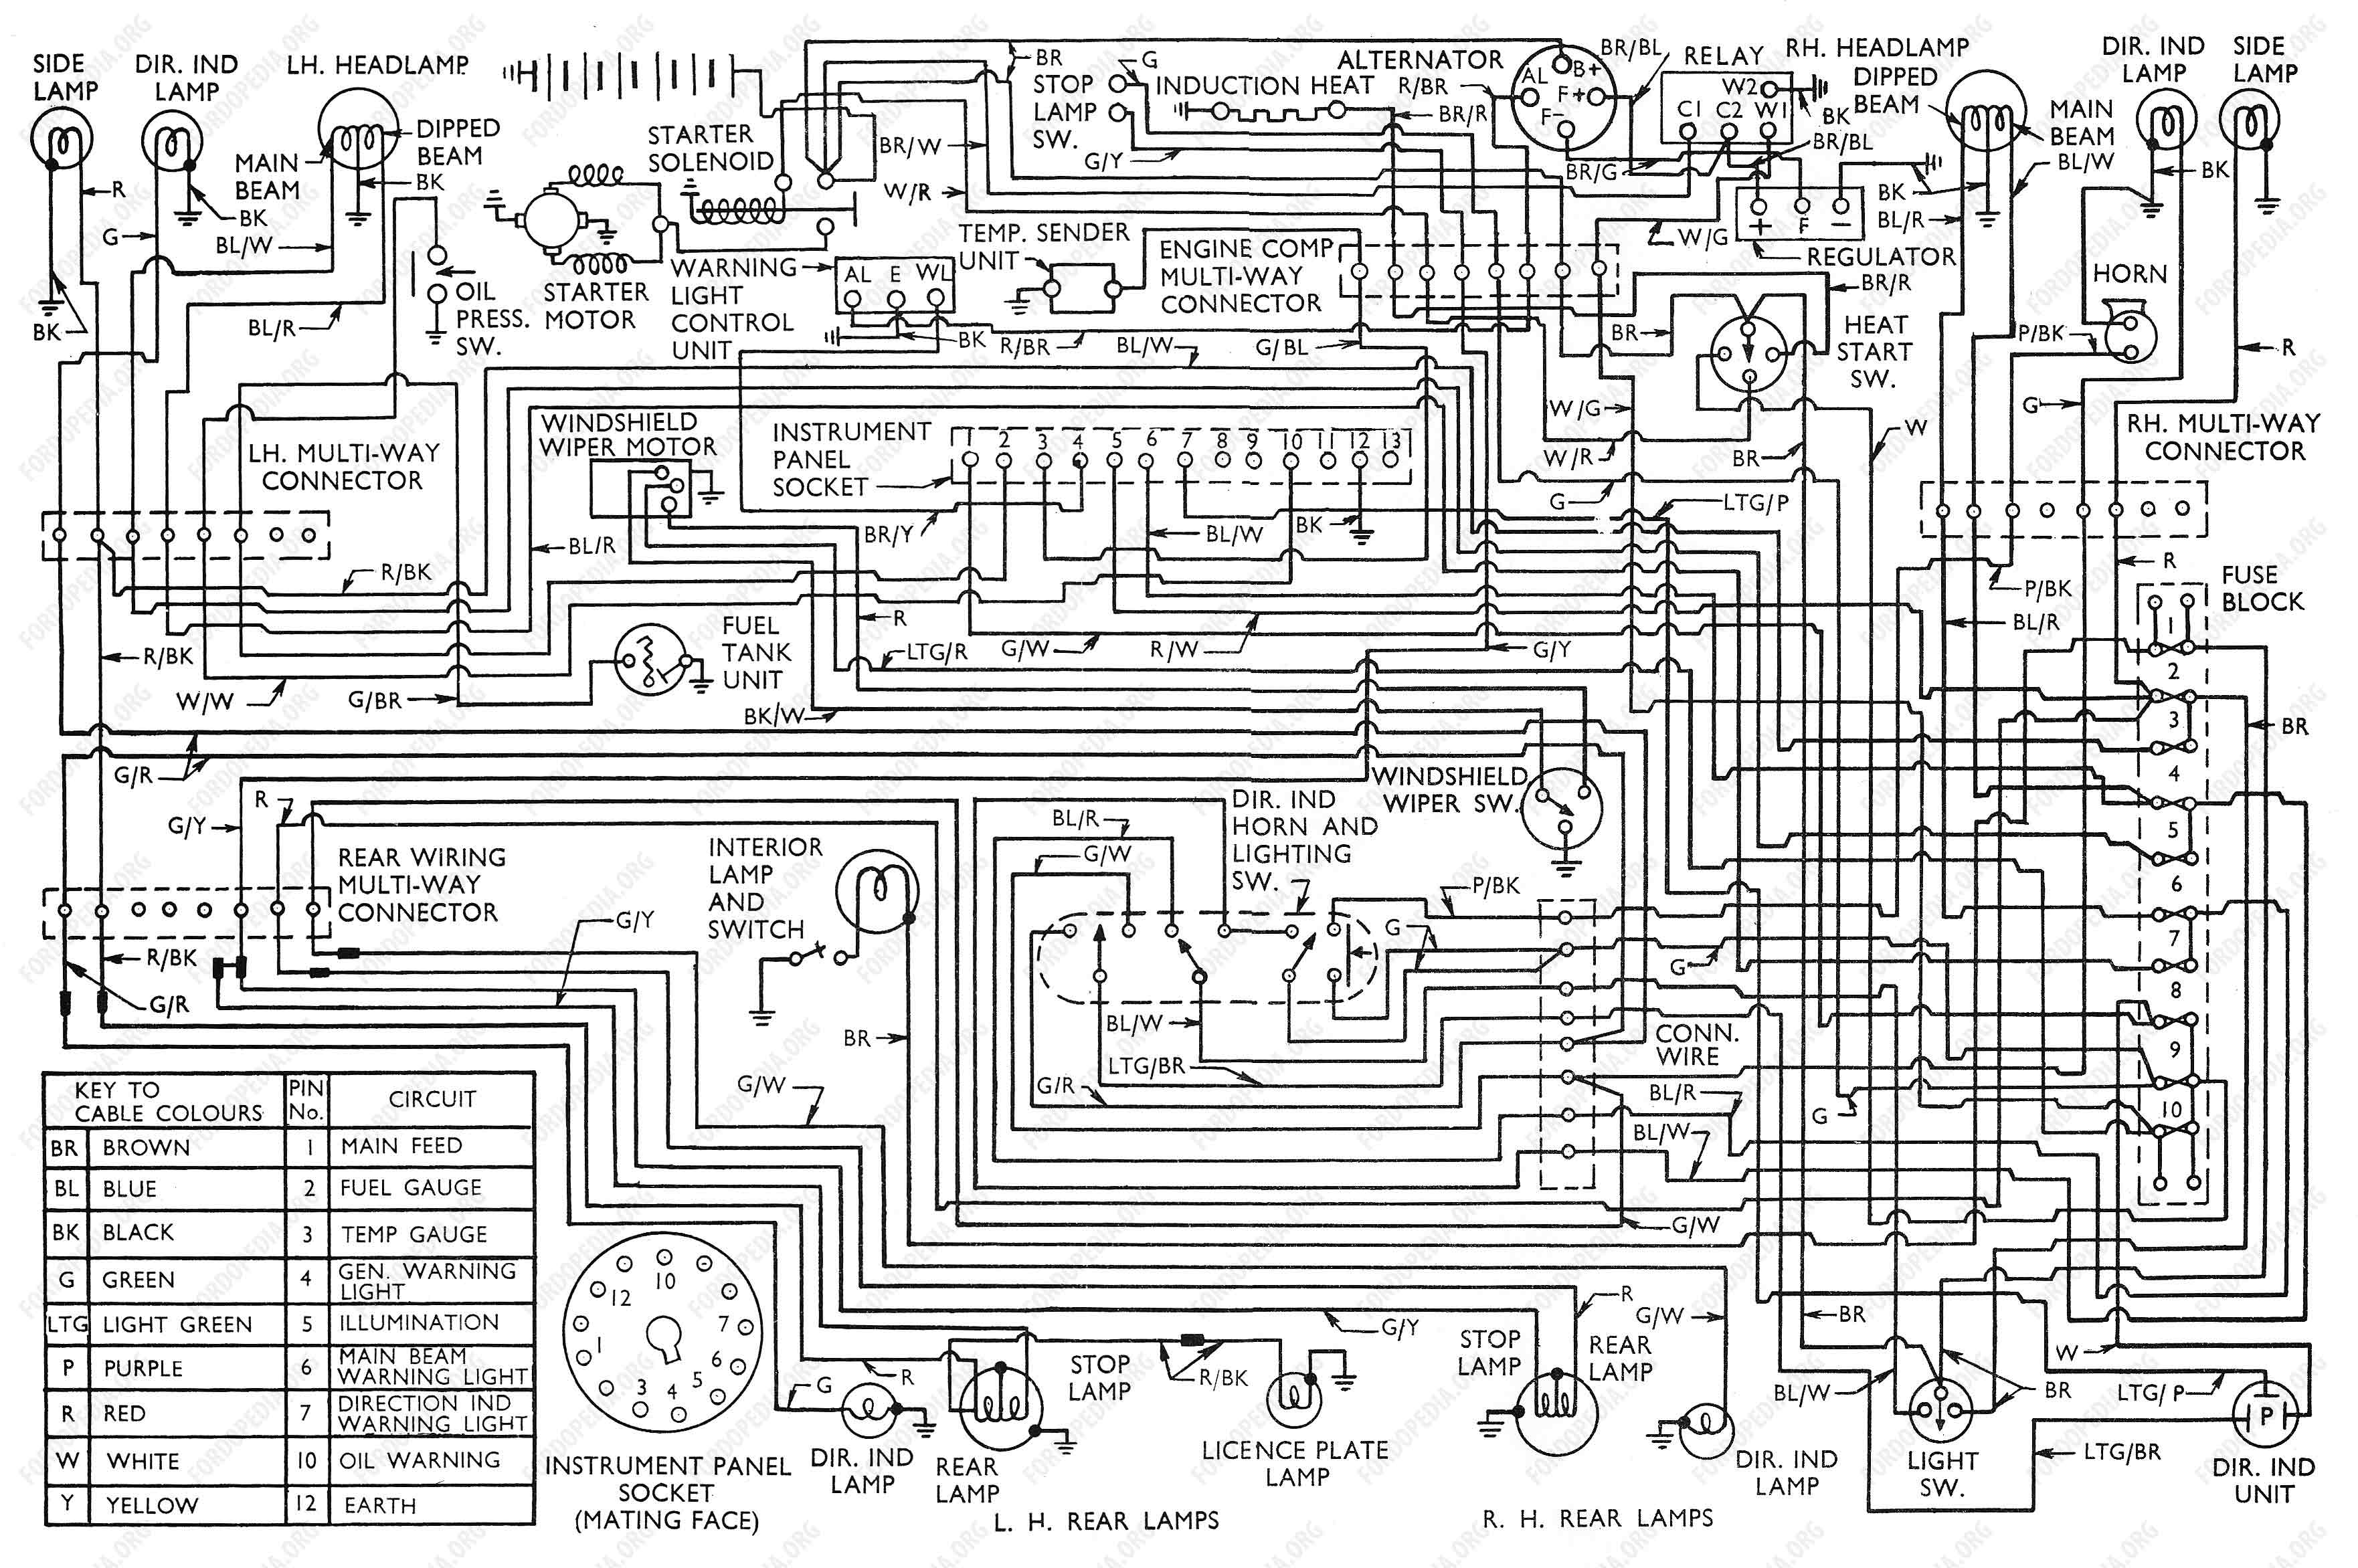 wiring diagram diesel fordopedia org electrical wiring diagram ford transit download at mifinder.co